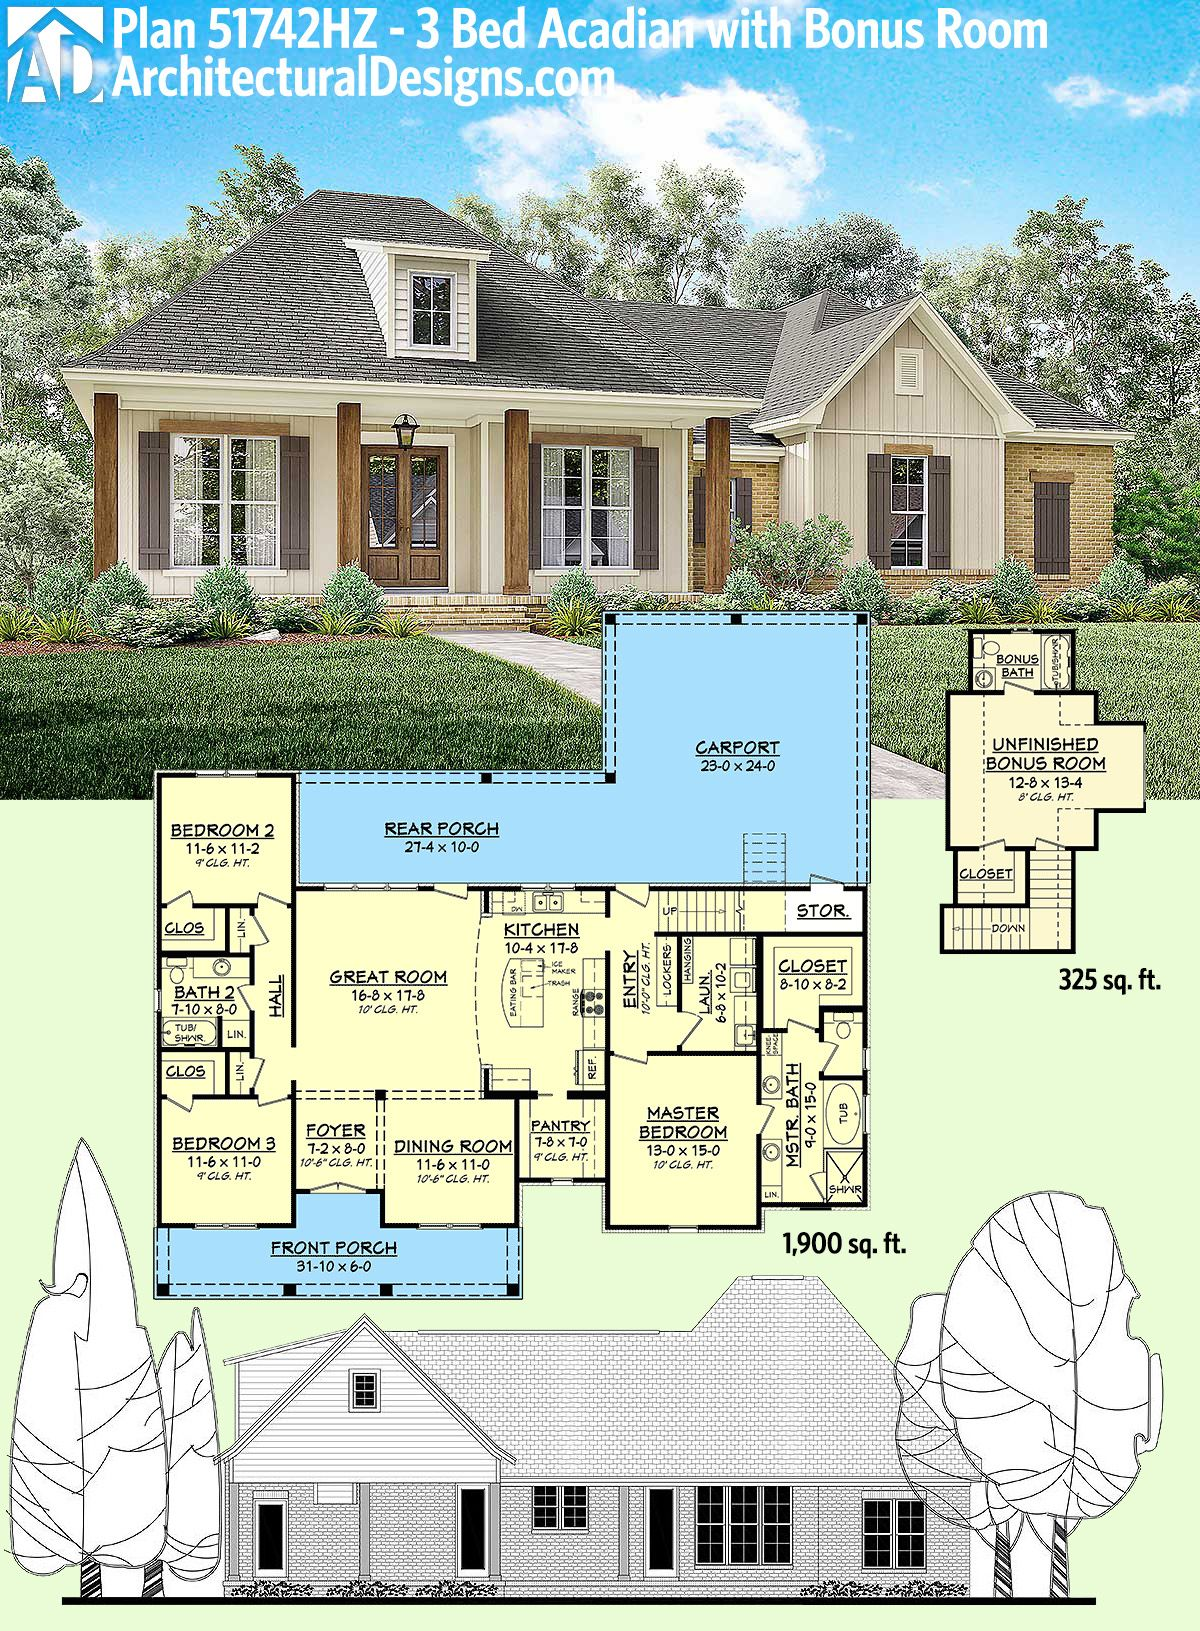 Delightful Architectural Designs Acadian House Plan 51742HZ Gives You 1,900 Square  Feet On The Main Floor And